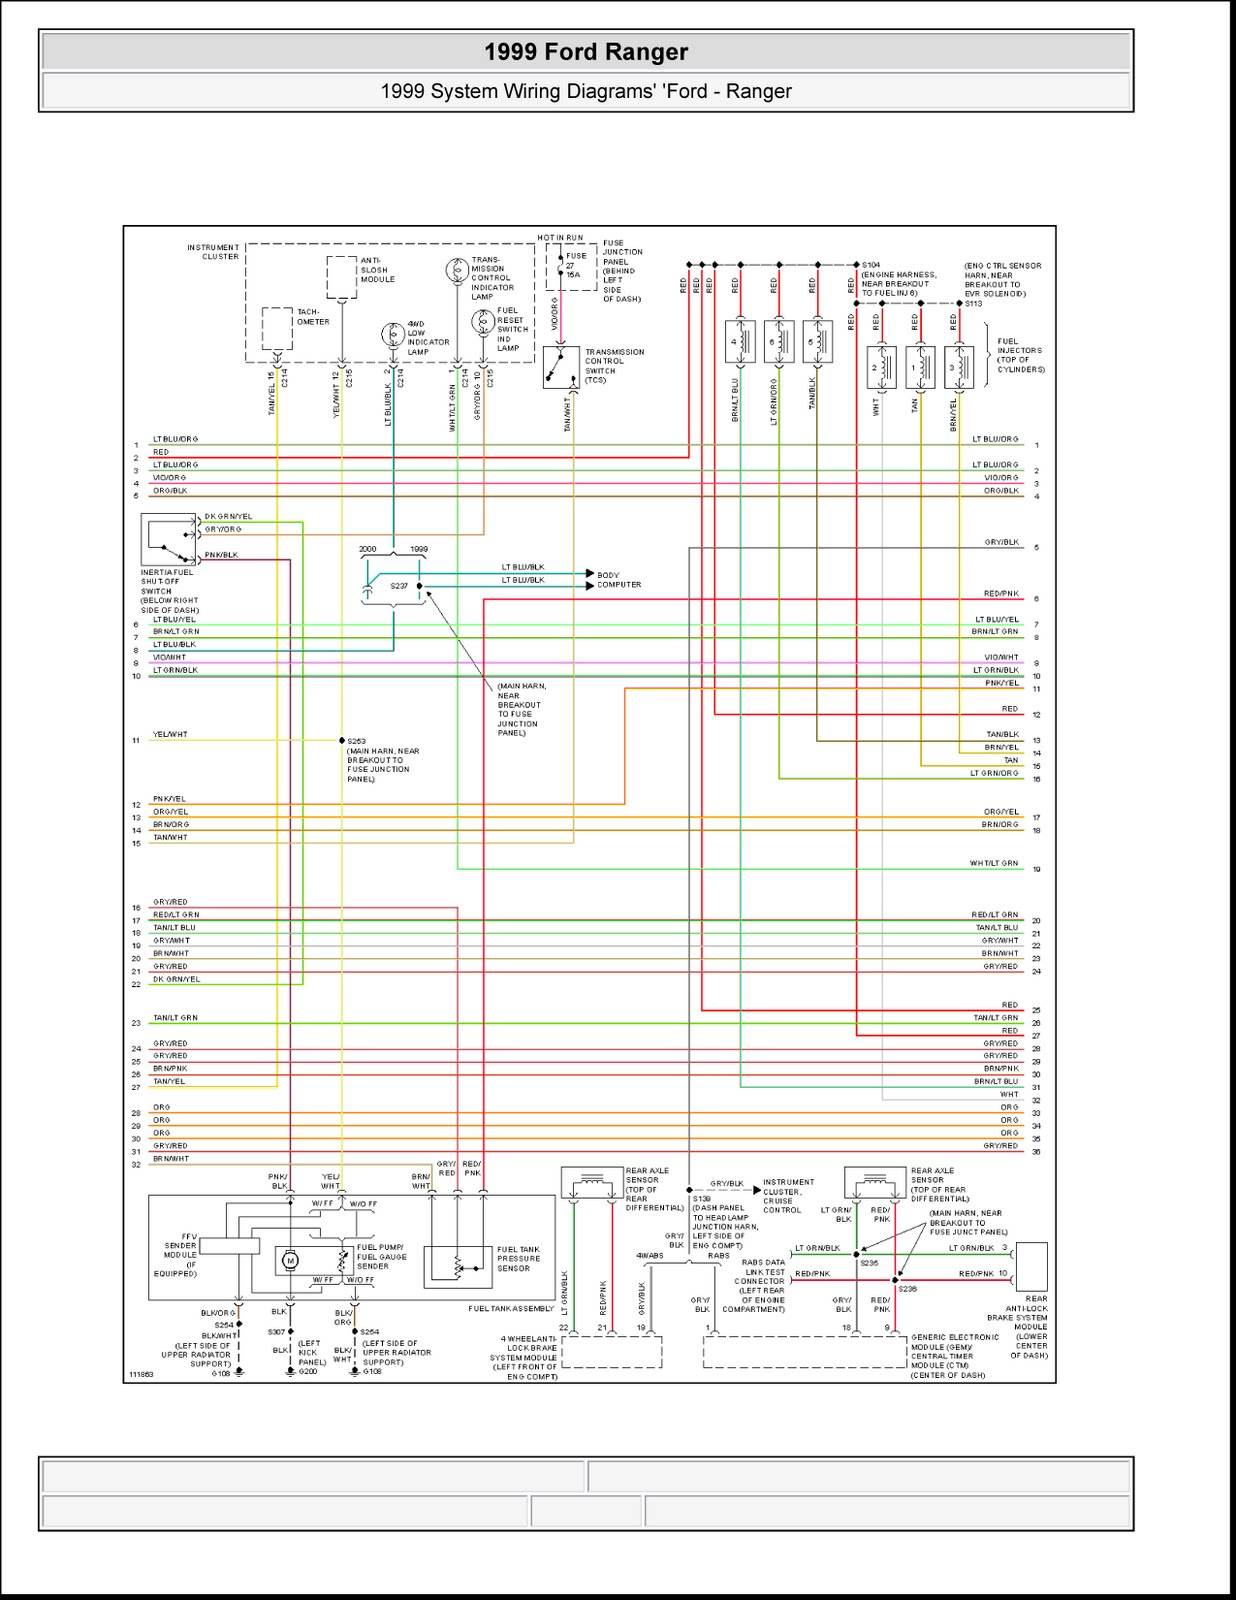 0003 1999 ford ranger system wiring diagrams 4 images wiring 1999 ford ranger ignition wiring diagram at beritabola.co